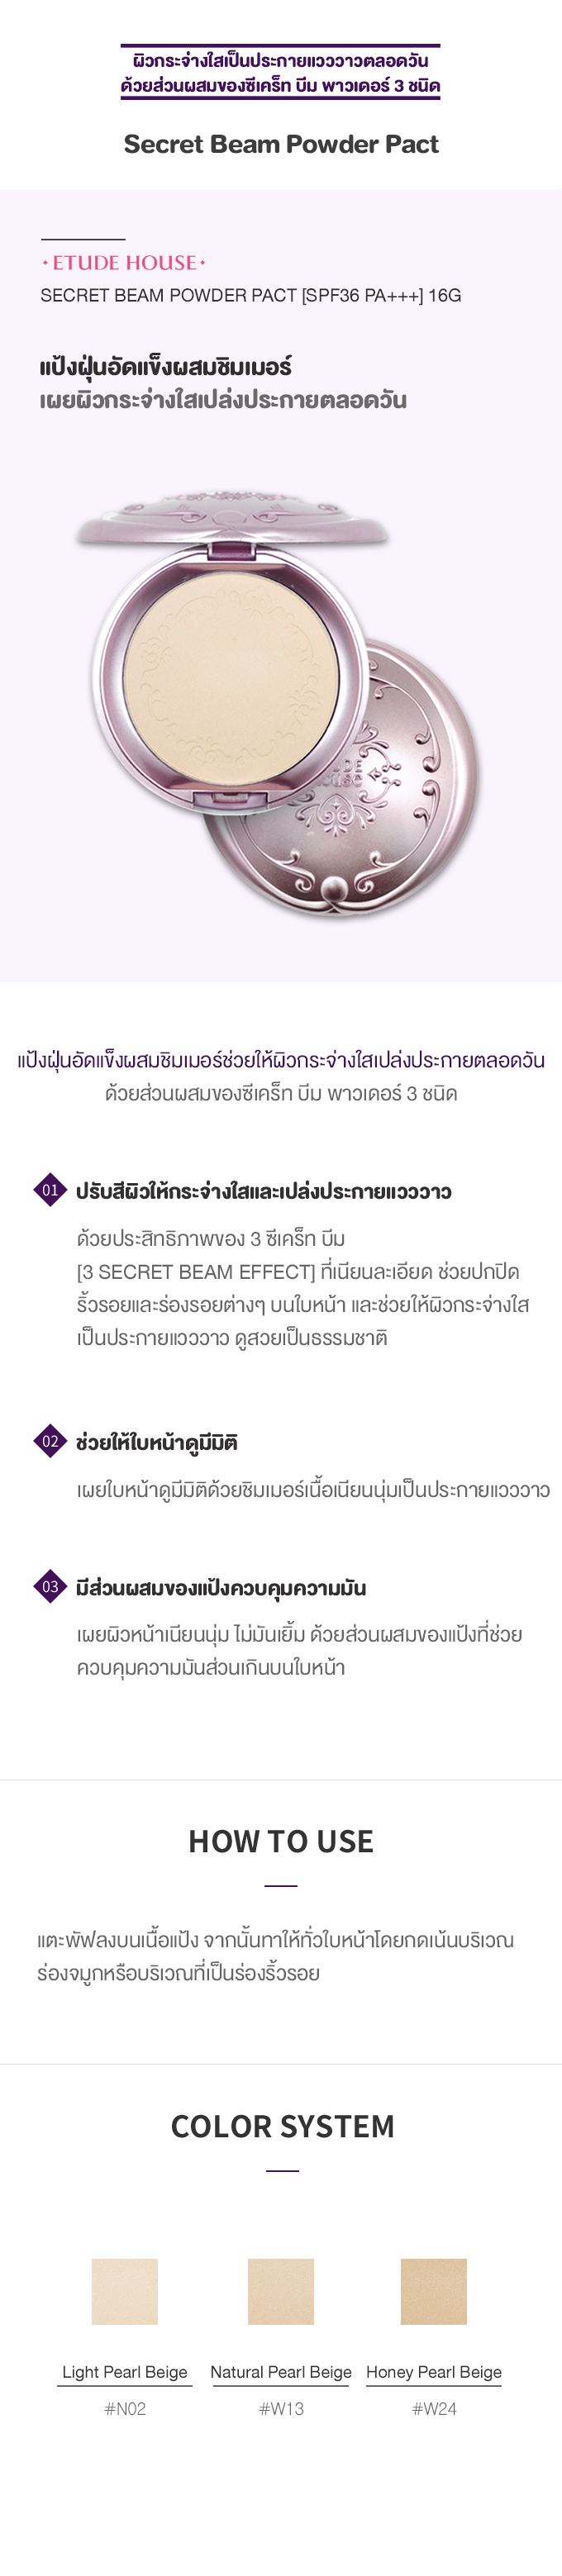 Secret Beam Powder Pact